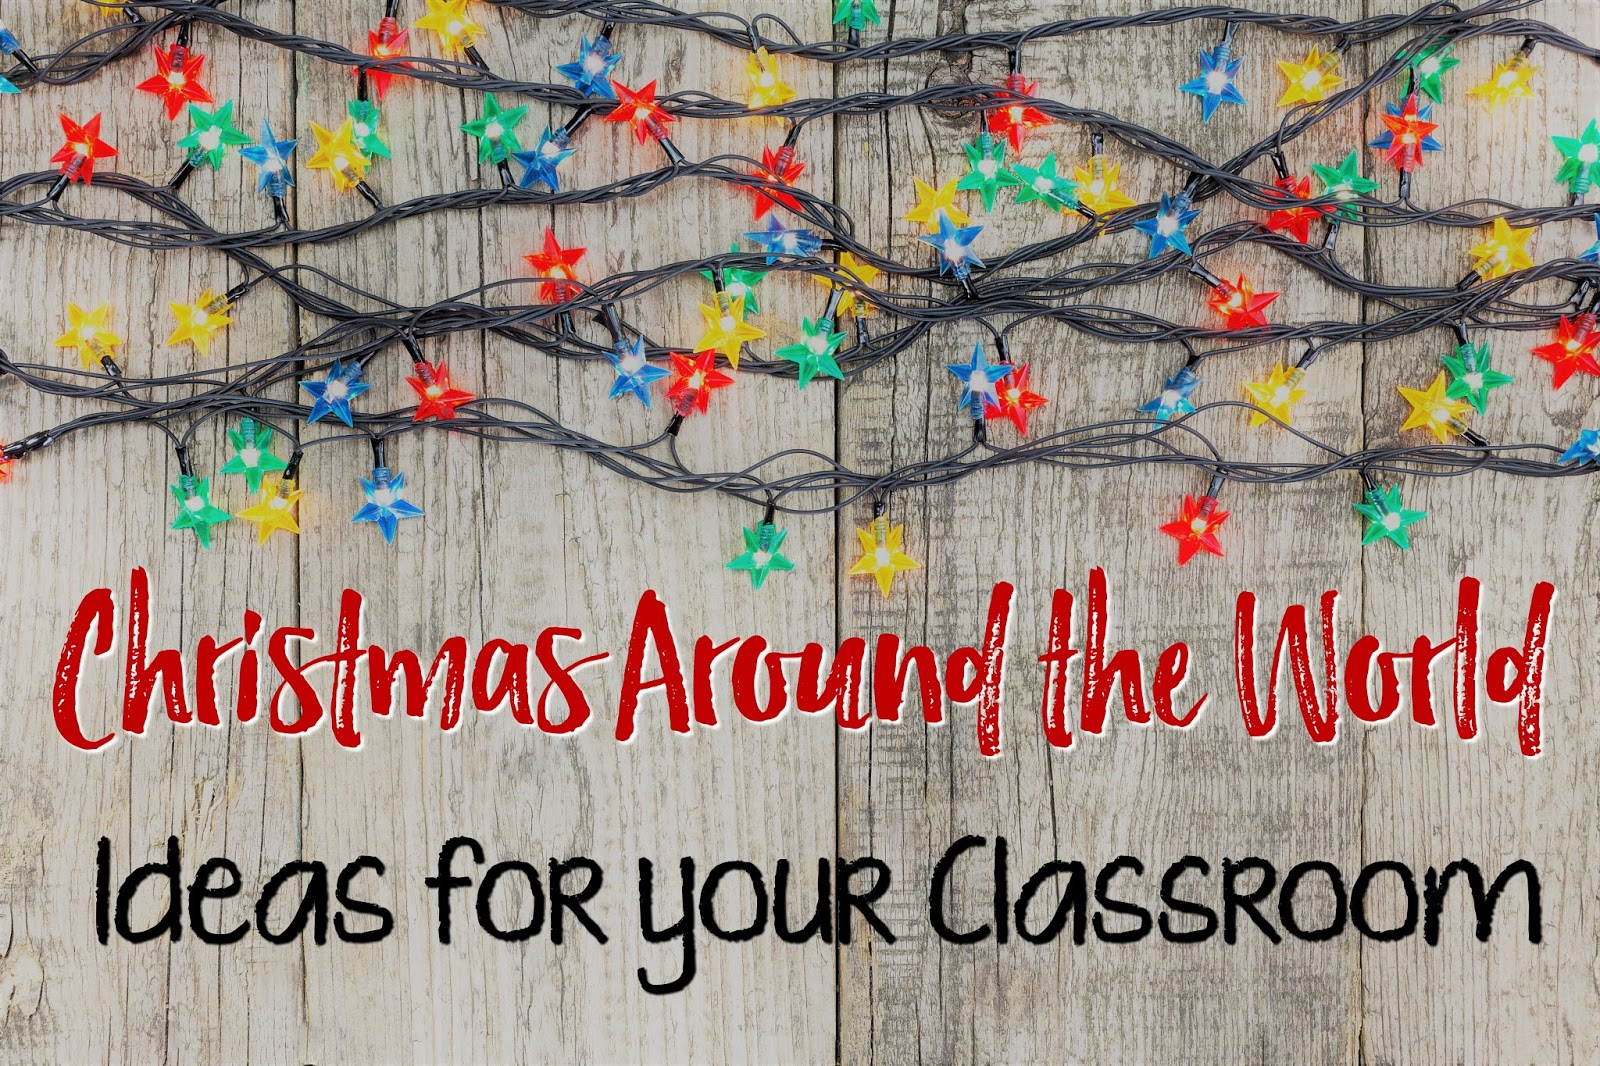 "e New Year, (or all of them!), they are always excited to learn about other countries and their holiday celebrations too!  In this post, you'll find tons of creative ideas and resources for an awesome and engaging unit on Christmas Around the World!  </div> <div class=""separator"" style=""clear: both; text-align: center;""> <a href=""https://3.bp.blogspot.com/-NIFR5HV146Y/WDtM1nyy6iI/AAAAAAAANCk/okoOAOPCQLAHyFmRor5UrDuI1m9uB5XigCLcB/s1600/Picture%2B%252810%2529.jpeg"" imageanchor=""1"" style=""""><img border=""0"" height=""426"" src=""https://3.bp.blogspot.com/-NIFR5HV146Y/WDtM1nyy6iI/AAAAAAAANCk/okoOAOPCQLAHyFmRor5UrDuI1m9uB5XigCLcB/s1600/Picture%2B%252810%2529.jpeg"" width=""640"" /></a></div> <div style=""text-align: center;""> My students have always loved learning about the holiday traditions and beliefs of other cultures!  This topic is filled with opportunities to ALSO teach about geography too!  Plus, it's always great to expand your students' horizons as they learn about other countries.  They will become more culturally aware and the world becomes a smaller, friendlier place for them when they can relate to, and empathize with, other world citizens., </div> <div class=""separator"" style=""clear: both; text-align: center;""> <a href=""https://2.bp.blogspot.com/-Kffbn-kC9Zo/WDtNeXSkrUI/AAAAAAAANCo/25btDlsCxkoYNUbDjxNofnBhIrT1m0WpgCLcB/s1600/IMG_9564.JPG"" imageanchor=""1"" style=""""><img border=""0"" height=""118"" src=""https://2.bp.blogspot.com/-Kffbn- kC9Zo/WDtNeXSkrUI/AAAAAAAANCo/25btDlsCxkoYNUbDjxNofnBhIrT1m0WpgCLcB/s1600/IMG_9564.JPG"" width=""320"" /></a></div> <div style=""text-align: center;""> With the excitement of the holidays in the air, it's a great time to take advantage of the kids' energy level and have them absorb all they can from some fabulous holiday books!  As a reminder, reading stories aloud to our students benefits them in so many ways.</div> <br /> <div class=""separator"" style=""clear: both; text-align: center;""> </div> <ul> <li style=""text-align: left;"">build vocabulary</li> <li style=""text-align: left;"">develop an understanding of story structures</li> <li style=""text-align: left;"">form connections between print elements and genres</li> <li style=""text-align: left;"">model fluency</li> <li style=""text-align: left;"">obtain deeper levels of understanding.</li> </ul> <div class=""separator"" style=""clear: both; text-align: center;""> </div> <div class=""separator"" style=""clear: both; text-align: center;""> </div> <div> <br /></div> <div style=""text-align: center;""> Here are a few read-aloud stories that are super-fun resources for teaching about Christmas around the world....</div> <div class=""separator"" style=""clear: both; text-align: center;""> <a href=""https://4.bp.blogspot.com/-35ijNJuNMoc/WDtOT2ZOqmI/AAAAAAAANCw/Xgpjy3yUtIQ2vceCKWTOCOdTZre0Sof2wCLcB/s1600/Capture%2B%25281%2529.PNG"" imageanchor=""1"" style=""""><img border=""0"" src=""https://4.bp.blogspot.com/-35ijNJuNMoc/WDtOT2ZOqmI/AAAAAAAANCw/Xgpjy3yUtIQ2vceCKWTOCOdTZre0Sof2wCLcB/s1600/Capture%2B%25281%2529.PNG"" /></a></div> <div style=""text-align: center;""> <span style=""color: #cc0000;"">Holidays Around the World - Celebrate Christmas: With Carols, Presents, and Peace</span></div> <div style=""text-align: center;""> <span style=""color: #cc0000;"">by Deborah Heiligman</span></div> <div style=""text-align: center;""> This book details the origins of Christmas as well as how it's now celebrated throughout the world.  Great pictures, facts and fun extension activities are to be found just inside!</div> <div class=""separator"" style=""clear: both; text-align: center;""> <a href=""https://1.bp.blogspot.com/-jRv0kPZfTHg/WDtVAmd_gWI/AAAAAAAANDE/Qji57IYNfRgL1Yg6yXnoYo4VxBtN9dZHQCLcB/s1600/Capture.PNG"" imageanchor=""1"" style=""""><img border=""0"" height=""320"" src=""https://1.bp.blogspot.com/-jRv0kPZfTHg/WDtVAmd_gWI/AAAAAAAANDE/Qji57IYNfRgL1Yg6yXnoYo4VxBtN9dZHQCLcB/s1600/Capture.PNG"" width=""253"" /></a></div> <div style=""text-align: center;""> <span style=""color: #cc0000;"">The Legend of the Poinsettia</span></div> <div style=""text-align: center;""> <span style=""color: #cc0000;"">by Tomie dePaola</span></div> <div style=""text-align: center;""> Newbery honor-winning author & Caldecott honor-winning illustrator Tomie dePaola has illustrated the legendary Mexican tale of the well-known Christmas plant.  Children will learn a valuable lesson on what makes a worthy Christmas gift.</div> <div style=""text-align: center;""> <a href=""https://1.bp.blogspot.com/-3MVhJhUm-K0/WDtVmjcOUdI/AAAAAAAANDI/GSBnoyhEZpE8ts8uU0ZjEHvcV6Qkmm0bwCLcB/s1600/Capture%2B2.PNG"" imageanchor=""1"" style=""""><img border=""0"" height=""266"" src=""https://1.bp.blogspot.com/-3MVhJhUm-K0/WDtVmjcOUdI/AAAAAAAANDI/GSBnoyhEZpE8ts8uU0ZjEHvcV6Qkmm0bwCLcB/s1600/Capture%2B2.PNG"" width=""320"" /></a></div> <div class=""separator"" style=""clear: both; text-align: center;""> <span style=""color: #cc0000;"">Angelina's Christmas</span></div> <div class=""separator"" style=""clear: both; text-align: center;""> <span style=""color: #cc0000;"">by Katharine Holabird</span></div> <div class=""separator"" style=""clear: both; text-align: center;""> Though most likely written for younger kids, this touching story is set in Britain--where Father Christmas visits, not Santa Claus.  A beautifully illustrated lesson about a small town and how it works together to take care of one of its special residents.  Yet, it also teaches kids to appreciate and value the older generation.  Many great discussions will arise from this story...</div> <div class=""separator"" style=""clear: both; text-align: center;""> <a href=""https://1.bp.blogspot.com/-RgUuydPsmCQ/WDtWO-1xDSI/AAAAAAAANDQ/Hrt5bG5pOHI_9_eQEn61uGpMc0eOOHOaQCLcB/s1600/Capture%2B3.PNG"" imageanchor=""1"" style=""""><img border=""0"" height=""257"" src=""https://1.bp.blogspot.com/-RgUuydPsmCQ/WDtWO-1xDSI/AAAAAAAANDQ/Hrt5bG5pOHI_9_eQEn61uGpMc0eOOHOaQCLcB/s1600/Capture%2B3.PNG"" width=""320"" /></a></div> <div class=""separator"" style=""clear: both; text-align: center;""> <span style=""color: #cc0000;"">The Polar Express</span></div> <div class=""separator"" style=""clear: both; text-align: center;""> <span style=""color: #cc0000;"">by Chris Van Allsburg</span></div> <div class=""separator"" style=""clear: both; text-align: center;""> An award-winning story with magical illustrations!  (One cool way to intro the book is to explore the geography and location of the North Pole.)  This is a delightful story of a young boy's wondrous Christmas journey!  Every picture is worth discussing and/or can be used as a separate activity (a story starter) for writing about!  You can also learn about the geography of Europe (where reindeer really live) and how to find the North Pole on a map before reading the book.  And of course, there is also the classic holiday movie that you could watch and compare to the book.  </div> <div class=""separator"" style=""clear: both; text-align: center;""> <a href=""https://3.bp.blogspot.com/-HSdcYODUx5E/WDtagY0JJbI/AAAAAAAANDk/JWXMFllf07sCULg1AtyF7oceMEWKXItNQCLcB/s1600/Capture%2B4.PNG"" imageanchor=""1"" style=""""><img border=""0"" height=""400"" src=""https://3.bp.blogspot.com/-HSdcYODUx5E/WDtagY0JJbI/AAAAAAAANDk/JWXMFllf07sCULg1AtyF7oceMEWKXItNQCLcB/s400/Capture%2B4.PNG"" width=""278"" /></a></div> <div class=""separator"" style=""clear: both; text-align: center;""> <span style=""color: #cc0000;"">How the Grinch Stole Christmas!</span></div> <div class=""separator"" style=""clear: both; text-align: center;""> <span style=""color: #cc0000;"">by Dr. Seuss</span></div> <div class=""separator"" style=""clear: both; text-align: center;""> Set in Whoville (what country is that in?)...this CLASSIC Seuss story is one that every kid loves!  It emphasizes the values of family and friendship over commercialization in a fun and engaging tale!  Your class can delve deeper and analyze, compare & contrast the culture and traditions of Whoville and your home country.</div> <div class=""separator"" style=""clear: both; text-align: center;""> <a href=""https://1.bp.blogspot.com/-4RaElqMnJu4/WDtbIsCMGAI/AAAAAAAANDo/tutpjXZ1mw0-ALkHXtQ0xXdUnkCjms6XACLcB/s1600/Capture%2B5.PNG"" imageanchor=""1"" style=""""><img border=""0"" height=""400"" src=""https://1.bp.blogspot.com/-4RaElqMnJu4/WDtbIsCMGAI/AAAAAAAANDo/tutpjXZ1mw0-ALkHXtQ0xXdUnkCjms6XACLcB/s400/Capture%2B5.PNG"" width=""321"" /></a></div> <div class=""separator"" style=""clear: both; text-align: center;""> <span style=""color: #cc0000;"">The Legend of Old Befana</span></div> <div class=""separator"" style=""clear: both; text-align: center;""> <span style=""color: #cc0000;"">by Tomie dePaola</span></div> <div class=""separator"" style=""clear: both; text-align: center;""> This book tells the story of Befana who brings gifts to Italian children on Epiphany.  I love how this book tells such a beautiful legend in an obviously well-researched manner.</div> <div class=""separator"" style=""clear: both; text-align: center;""> <a href=""https://4.bp.blogspot.com/-lFYXaiZcwmk/WDtbf50dTiI/AAAAAAAANDs/K29rpGZcGas6lZVmfXqIOKbMXE-zJ-QdACLcB/s1600/Capture%2B6.PNG"" imageanchor=""1"" style=""""><img border=""0"" height=""400"" src=""https://4.bp.blogspot.com/-lFYXaiZcwmk/WDtbf50dTiI/AAAAAAAANDs/K29rpGZcGas6lZVmfXqIOKbMXE-zJ-QdACLcB/s400/Capture%2B6.PNG"" width=""350"" /></a></div> <div class=""separator"" style=""clear: both; text-align: center;""> <span style=""color: #cc0000;"">Trees of Cranes</span></div> <div class=""separator"" style=""clear: both; text-align: center;""> <span style=""color: #cc0000;"">by Allen Say</span></div> <div class=""separator"" style=""clear: both; text-align: center;""> Tree of Cranes is the story of a young boy living in Japan.  His mother has lived in California and wants to teach him about the traditions in both cultures.</div> <div class=""separator"" style=""clear: both; text-align: center;""> <a href=""https://1.bp.blogspot.com/-2AGcCKnvBOM/WDtby4w2wdI/AAAAAAAANDw/qaUDnQwzXegL5o5ramokaUOkXLa0Pvo0gCLcB/s1600/capture%2B7.PNG"" imageanchor=""1"" style=""""><img border=""0"" height=""400"" src=""https://1.bp.blogspot.com/-2AGcCKnvBOM/WDtby4w2wdI/AAAAAAAANDw/qaUDnQwzXegL5o5ramokaUOkXLa0Pvo0gCLcB/s400/capture%2B7.PNG"" width=""338"" /></a></div> <div class=""separator"" style=""clear: both; text-align: center;""> <span style=""color: #cc0000;"">The Trees of the Dancing Goats</span></div> <div class=""separator"" style=""clear: both; text-align: center;""> <span style=""color: #cc0000;"">by Patricia Polacco</span></div> <div class=""separator"" style=""clear: both; text-align: center;""> This book takes place in a village where many of the families have come down with Scarlet Fever.  As Trisha and her family prepare to celebrate Hanukkah, they realize that many of their neighbors will not be well enough to celebrate with them.  Trisha's family decides they will take a special holiday dinner and decorations to sick members of their community.  I love the example of unselfish giving!</div> <div class=""separator"" style=""clear: both; text-align: center;""> <a href=""https://2.bp.blogspot.com/-EwPfJyKY0DE/WDtcvs3avXI/AAAAAAAAND8/t7igITC5GxE6-Bz78twXwT4SCV1U75dcQCLcB/s1600/Capture%2B8.PNG"" imageanchor=""1"" style=""""><img border=""0"" height=""400"" src=""https://2.bp.blogspot.com/-EwPfJyKY0DE/WDtcvs3avXI/AAAAAAAAND8/t7igITC5GxE6-Bz78twXwT4SCV1U75dcQCLcB/s400/Capture%2B8.PNG"" width=""302"" /></a></div> <div class=""separator"" style=""clear: both; text-align: center;""> <span style=""color: #cc0000;"">Lucia Morning in Sweden</span></div> <div class=""separator"" style=""clear: both; text-align: center;""> <span style=""color: #cc0000;"">by Ewa Rydaker</span></div> <div class=""separator"" style=""clear: both; text-align: center;""> This book is my favorite to introduce my students to the Lucia Day holiday traditions in Sweden.</div> <div class=""separator"" style=""clear: both; text-align: center;""> <a href=""https://www.teacherspayteachers.com/Product/December-Read-Alouds-Interactive-Read-Alouds-2194164"" imageanchor=""1"" style=""""><img border=""0"" height=""480"" src=""https://4.bp.blogspot.com/-bit-PMrwc9k/WEIsO821vpI/AAAAAAAANH4/tuew0dIUDYcNgtXLd2qxuIjHQyJIYgamwCLcB/s1600/Picture%2B%25282%2529.png"" width=""640"" /></a></div> <div class=""separator"" style=""clear: both; text-align: center;""> Do you love holiday books as much as I do?  These are some of the books that I share with my students during the month of December.  In my classroom, I use the interactive read aloud model to make the time I spend reading to my students more purposeful.  </div> <div class=""separator"" style=""clear: both; text-align: center;""> <a href=""https://www.teacherspayteachers.com/Product/December-Read-Alouds-Interactive-Read-Aloud-Freebie-Sampler-Auntie-Claus-2224423"" imageanchor=""1"" style=""""><img border=""0"" height=""480"" src=""https://2.bp.blogspot.com/-6celmCGns5Q/WEImTaQw3BI/AAAAAAAANHg/YgKCyo0u1AQ1kmu7kYbr4YDgHF10GIvBwCLcB/s1600/unnamed.png"" width=""640"" /></a></div> <div class=""separator"" style=""clear: both; text-align: center;""> <br /></div> <div class=""separator"" style=""clear: both; text-align: center;""> </div> <div class=""separator"" style=""clear: both; text-align: center;""> I model comprehension strategies for my students using purposefully written talking points.  You can check it out for FREE BELOW.  </div> <script async="""" id=""_ck_134016"" src=""https://forms.convertkit.com/134016?v=6""></script>  <br /> <div class=""separator"" style=""clear: both; text-align: center;""> <br /></div> <div class=""separator"" style=""clear: both; text-align: center;""> Love it?  Want to see more?  Head over to <a href=""https://www.teacherspayteachers.com/Product/December-Read-Alouds-Interactive-Read-Alouds-2194164"">HERE </a>to check it out.  </div> <div class=""separator"" style=""clear: both; text-align: center;""> <a href=""https://3.bp.blogspot.com/-jqZMRJsC-mk/WDtdCYv2GYI/AAAAAAAANEA/DS39SWocPjsfYtzW7OZ_n_xov2_vPw2vgCLcB/s1600/IMG_9563.JPG"" imageanchor=""1"" style=""""><img border=""0"" height=""118"" src=""https://3.bp.blogspot.com/-jqZMRJsC-mk/WDtdCYv2GYI/AAAAAAAANEA/DS39SWocPjsfYtzW7OZ_n_xov2_vPw2vgCLcB/s1600/IMG_9563.JPG"" width=""320"" /></a></div> <div class=""separator"" style=""clear: both; text-align: center;""> <br /></div> <div class=""separator"" style=""clear: both; text-align: center;""> </div> <div class=""separator"" style=""clear: both; text-align: center;""> <a href=""https://www.teacherspayteachers.com/Product/Fluency-Strips-Fluency-Practice-for-2nd-3rd-Grades-Set-7-2852562"" imageanchor=""1"" style=""""><img border=""0"" height=""480"" src=""https://3.bp.blogspot.com/-X2A_T3xCIeU/WD7NbLqQZpI/AAAAAAAANFY/roypuKWN8yc64Knea-LDd3rplz5ibKcLgCLcB/s1600/IMG_9610.jpg"" width=""640"" /></a></div> <div class=""separator"" style=""clear: both; text-align: center;""> Want to improve your students' fluency rates?  <a href=""https://www.teacherspayteachers.com/Product/Fluency-Strips-Fluency-Practice-for-2nd-3rd-Grades-Set-7-2852562"">HERE</a> is a perfect set of fluency strips that ALSO educates students about how other countries celebrate.  It's a unique way of getting twice the learning in one resource!  Perfect as a literacy center station, these purposeful strips will improve student fluency while also teaching about Christmas around the world.</div> <div class=""separator"" style=""clear: both; text-align: center;""> <a href=""https://www.teacherspayteachers.com/Product/December-Reading-Passages-Nonfiction-Text-with-Comprehension-Activities-2208628"" imageanchor=""1"" style=""""><img border=""0"" height=""640"" src=""https://2.bp.blogspot.com/-r06cRBllHXU/WD7ZSemnf2I/AAAAAAAANFw/kkNLdsGop4YqM6-GN6_0_xhT4BTRoPB8QCLcB/s1600/IMG_9638.jpg"" width=""640"" /></a></div> <div class=""separator"" style=""clear: both; text-align: center;""> Looking for an effortless way to give your students access to the traditions and celebrations from around the world?  Take a look at these nonfiction reading passages.  The are full of kid-friendly information.  Students are able to practice locating evidence in the text.  They are also able to demonstrate their learning using graphic organizers.  Click <a href=""https://www.teacherspayteachers.com/Product/December-Reading-Passages-Nonfiction-Text-with-Comprehension-Activities-2208628"">HERE</a> to take a closer look.</div> <div class=""separator"" style=""clear: both; text-align: center;""> </div> <div class=""separator"" style=""clear: both; text-align: center;""> <a href=""https://2.bp.blogspot.com/-M0IfZmeQ2Vs/WDtePF9ERxI/AAAAAAAANEQ/Bvv9npBiZSQlF2EvNOjbCGLZV7A-o3uuACLcB/s1600/IMG_9566.JPG"" imageanchor=""1"" style=""""><img border=""0"" height=""118"" src=""https://2.bp.blogspot.com/-M0IfZmeQ2Vs/WDtePF9ERxI/AAAAAAAANEQ/Bvv9npBiZSQlF2EvNOjbCGLZV7A-o3uuACLcB/s1600/IMG_9566.JPG"" width=""320"" /></a></div> <div class=""separator"" style=""clear: both; text-align: center;""> Hurray for HOLIDAY hands-on learning with art!</div> <div class=""separator"" style=""clear: both; text-align: center;""> <a href=""https://www.teacherspayteachers.com/Product/Christmas-Around-the-World-Agamographs-Unique-Christmas-Activity-2243595"" imageanchor=""1"" style=""""><img border=""0"" height=""640"" src=""https://1.bp.blogspot.com/-KeCNMzXngGE/WDteZRqZsiI/AAAAAAAANEU/-QEYgfSf1tsZV-WG8O_PkcgsRZNZFjmkQCLcB/s1600/ChristmasAroundTheWorld_Agamograph_ArtwithJennyK.001.jpeg"" width=""640"" /></a></div> <div class=""separator"" style=""clear: both; text-align: center;""> I was so excited when I found this amazing resource from Art with Jenny K!  An agamograph is a series of images that changes when viewed from different angles.</div> <div class=""separator"" style=""clear: both; text-align: center;""> <a href=""https://www.teacherspayteachers.com/Product/Christmas-Around-the-World-Agamographs-Unique-Christmas-Activity-2243595"" imageanchor=""1"" style=""""><img border=""0"" height=""640"" src=""https://4.bp.blogspot.com/-4j4a_UgHV8I/WDtecEJcUVI/AAAAAAAANEY/tVKSB6B26uA6Mb9w6OFx55ZRH0SPN-ZogCLcB/s1600/ChristmasAroundTheworld_Agamograph1_AWJK.001.jpeg"" width=""640"" /></a></div> <div class=""separator"" style=""clear: both; text-align: center;""> The traditional method of creating an agamograph is very complicated, but Jenny has masterfully created a kid friendly version.  All the kids need to do is color the image, fold it correctly, and display their masterpiece.  These would go great with mini-research projects on the traditions in each country.  I can't wait to see my students' masterpieces displayed alongside their learning for this unit.  You can check out Jenny's amazing resource HERE.  </div> <div class=""separator"" style=""clear: both; text-align: center;""> <a href=""https://1.bp.blogspot.com/-Q2WpntNJEWA/WDtdtBTn2oI/AAAAAAAANEI/Yo-y9EZTUH84TI9OXsAjXKYvOMfQfcdTACLcB/s1600/IMG_9565.JPG"" imageanchor=""1"" style=""""><img border=""0"" height=""118"" src=""https://1.bp.blogspot.com/-Q2WpntNJEWA/WDtdtBTn2oI/AAAAAAAANEI/Yo-y9EZTUH84TI9OXsAjXKYvOMfQfcdTACLcB/s1600/IMG_9565.JPG"" width=""320"" /></a></div> <div class=""separator"" style=""clear: both; text-align: center;""> Finding one is EASY PEASY!  Just take a moment to think about a parent, fellow staff member, or community member(s) who are from another country.  You're sure to find someone who would LOVE to speak to your class about what typical holiday celebrations & traditions are like in their country.</div> <div class=""separator"" style=""clear: both; text-align: center;""> <a href=""https://1.bp.blogspot.com/-mD93y6LLv7Y/WDtqK5ojTyI/AAAAAAAANEo/Z6O_a6tHP4AZjtRNW239cxJjoFg62IV2wCLcB/s1600/IMG_9567.JPG"" imageanchor=""1"" style=""""><img border=""0"" height=""118"" src=""https://1.bp.blogspot.com/-mD93y6LLv7Y/WDtqK5ojTyI/AAAAAAAANEo/Z6O_a6tHP4AZjtRNW239cxJjoFg62IV2wCLcB/s1600/IMG_9567.JPG"" width=""320"" /></a></div> <div class=""separator"" style=""clear: both; text-align: center;""> <br /></div> <div class=""separator"" style=""clear: both; text-align: center;""> <iframe allowfullscreen="""" frameborder=""0"" height=""315"" src=""https://www.youtube.com/embed/ReJ4PRklbKA"" width=""560""></iframe>  </div> <div style=""text-align: center;""> Sing Along to Feliz Navidad!  This version also has the text to the song to help students unfamiliar with it. <br /> <br /></div> <div style=""text-align: center;""> <iframe allowfullscreen="""" frameborder=""0"" height=""315"" src=""https://www.youtube.com/embed/nr9lciqOD5c"" width=""560""></iframe><br /> Your students will have fun learning this French Christmas carol.  </div> <div style=""text-align: center;""> <br /></div> <div style=""text-align: center;""> <iframe allowfullscreen="""" frameborder=""0"" height=""315"" src=""https://www.youtube.com/embed/02eu9mxPDl8?list=PLDO7YrQpg54SzOc-L7NTbNNN4Lit9IXp0"" width=""560""></iframe> </div> <div style=""text-align: center;""> This is a collection of videos about Christmas traditions around the world.</div> <div style=""text-align: center;""> <iframe allowfullscreen="""" frameborder=""0"" height=""315"" src=""https://www.youtube.com/embed/LwN_Kcb-XhM"" width=""560""></iframe> </div> <div style=""text-align: center;""> This video is full of amazing picture of holiday traditions around the world.  </div> <div class=""separator"" style=""clear: both; text-align: center;""> <a href=""https://4.bp.blogspot.com/-_YQma4Nq8eU/WDttHsA7K-I/AAAAAAAANE0/3I2YiwigjbwxU7oy_hlfJViYRNgz3v4WACLcB/s1600/IMG_9568.jpg"" imageanchor=""1"" style=""""><img border=""0"" height=""118"" src=""https://4.bp.blogspot.com/-_YQma4Nq8eU/WDttHsA7K-I/AAAAAAAANE0/3I2YiwigjbwxU7oy_hlfJViYRNgz3v4WACLcB/s1600/IMG_9568.jpg"" width=""320"" /></a></div> <div style=""text-align: center;""> <br /></div> <div style=""text-align: center;""> <span style=""color: #cc0000;"">Holiday Foods from Around the World</span></div> <div style=""text-align: center;""> <br /></div> <div style=""text-align: center;""> Click <a href=""https://www.buzzfeed.com/juliapugachevsky/heavenly-christmas-foods-from-around-the-world?utm_term=.ayAW3EDz7j#.rgRxk8mKwv"" target=""_blank"">HERE</a> and <a href=""http://www.familycircle.com/holiday/christmas/recipes/holiday-recipes-from-around-the-world/?page=3"" target=""_blank"">HERE</a> to show pictures of holiday foods from around the world.  This can lead to a fun discussion of how geography and food source options affect the foods we eat!</div> <div style=""text-align: center;""> <br /></div> <div style=""text-align: center;""> <span style=""color: #cc0000;"">Student-Led Videos</span></div> <div style=""text-align: center;""> <br /></div> <div style=""text-align: center;""> Any future video stars in your class?  Make videos of students (or have them make them with their families) explaining about holiday traditions in their home. They can them to you to share with the class. <br /> <br /> <div class=""separator"" style=""clear: both; text-align: center;""> <a href=""https://2.bp.blogspot.com/-EsO2kHqeyWg/WD95hbmSfXI/AAAAAAAANGI/wj1huSHLpE8Ufnlq3uOl9PyFm8EHFmcjwCLcB/s1600/IMG_9644.png"" imageanchor=""1"" style=""""><img border=""0"" height=""480"" src=""https://2.bp.blogspot.com/-EsO2kHqeyWg/WD95hbmSfXI/AAAAAAAANGI/wj1huSHLpE8Ufnlq3uOl9PyFm8EHFmcjwCLcB/s1600/IMG_9644.png"" width=""640"" /></a></div> <br /> <span style=""color: #cc0000;"">Christmas Around the World Word Search FREEBIE</span><br /> <br /> Pick up this FREEBIE as a fun addition to your Christmas Around the World Unit.<br /> <script async="""" id=""_ck_134011"" src=""https://forms.convertkit.com/134011?v=6""></script>  I hope you have found this information useful in planning your upcoming unit on Christmas Around the World!  Feel free to comment below with any other ideas you have to share!</div> <div style=""text-align: center;""> <br /> <div style=""text-align: center;""> <span style=""font-size: large; ""><a href=""https://1.bp.blogspot.com/-ceS_hcMSxTQ/WB_UlovoDrI/AAAAAAAAMfc/dzkIfGWaWAI9zy5Vu3T-Tux-g_8bne-3ACLcB/s1600/PinItButtonLarge%2B%25281%2529.png"" imageanchor=""1"" style=""""><img border=""0"" height=""200"" src=""https://1.bp.blogspot.com/-ceS_hcMSxTQ/WB_UlovoDrI/AAAAAAAAMfc/dzkIfGWaWAI9zy5Vu3T-Tux-g_8bne-3ACLcB/s200/PinItButtonLarge%2B%25281%2529.png"" width=""200"" /></a></span><br /> <br /> Also, so you'll always have access to this information, please pin this post to save and share!<br /> <div class=""separator"" style=""clear: both; text-align: center;""> <a href=""https://3.bp.blogspot.com/-i2pyFom_0Lw/WEIiWJKGfRI/AAAAAAAANHI/9srHbBr5ftQGbTN8W5SEB3z5YdNmEqXTACLcB/s1600/Picture%2B%25281%2529.png"" imageanchor=""1"" style=""""><img border=""0"" height=""400"" src=""https://3.bp.blogspot.com/-i2pyFom_0Lw/WEIiWJKGfRI/AAAAAAAANHI/9srHbBr5ftQGbTN8W5SEB3z5YdNmEqXTACLcB/s400/Picture%2B%25281%2529.png"" width=""266"" /></a></div> <br /></div> <div style=""text-align: center;""> </div> <div class=""separator"" style=""clear: both;""> <a href=""https://2.bp.blogspot.com/-PnXIReNlGtk/WB_UsKAD79I/AAAAAAAAMfg/Ikdm3A2vjEY6nA73T0Jd8rrIr4i4XoN3wCLcB/s1600/Picture.jpeg"" imageanchor=""1"" style=""""><span style=""font-size: large;""></span></a></div> </div> <div style=""text-align: center;""> <br /></div> <br /> <center> <img alt="""" border=""0"" height=""141"" id=""Image-Maps-Com-lisa-g-sm"" orgheight=""141"" orgwidth=""172"" src=""https://4.bp.blogspot.com/-iZMbG0PMRuc/V23janC8JuI/AAAAAAABeX0/BpvAJ003X-wbs4rF7s9jE8oq8lSbZ1SswCLcB/s1600/Signature2.png"" usemap=""#lisa-g-sm"" width=""172"" /> <map id=""ImageMapsCom-lisa-g-sm"" name=""lisa-g-sm""> <area alt=""Bloglovin'"" coords=""0,126,172,141"" href=""http://www.bloglovin.com/en/blog/11723805"" shape=""rect"" style=""outline: none;"" target=""_blank"" title=""Bloglovin'""></area> <area alt=""Image Map"" coords=""170,139,172,141"" href=""http://www.image-maps.com/index.php?aff=mapped_users_57191"" shape=""rect"" style=""outline: none;"" title=""Image Map""></area> </map> </center>"